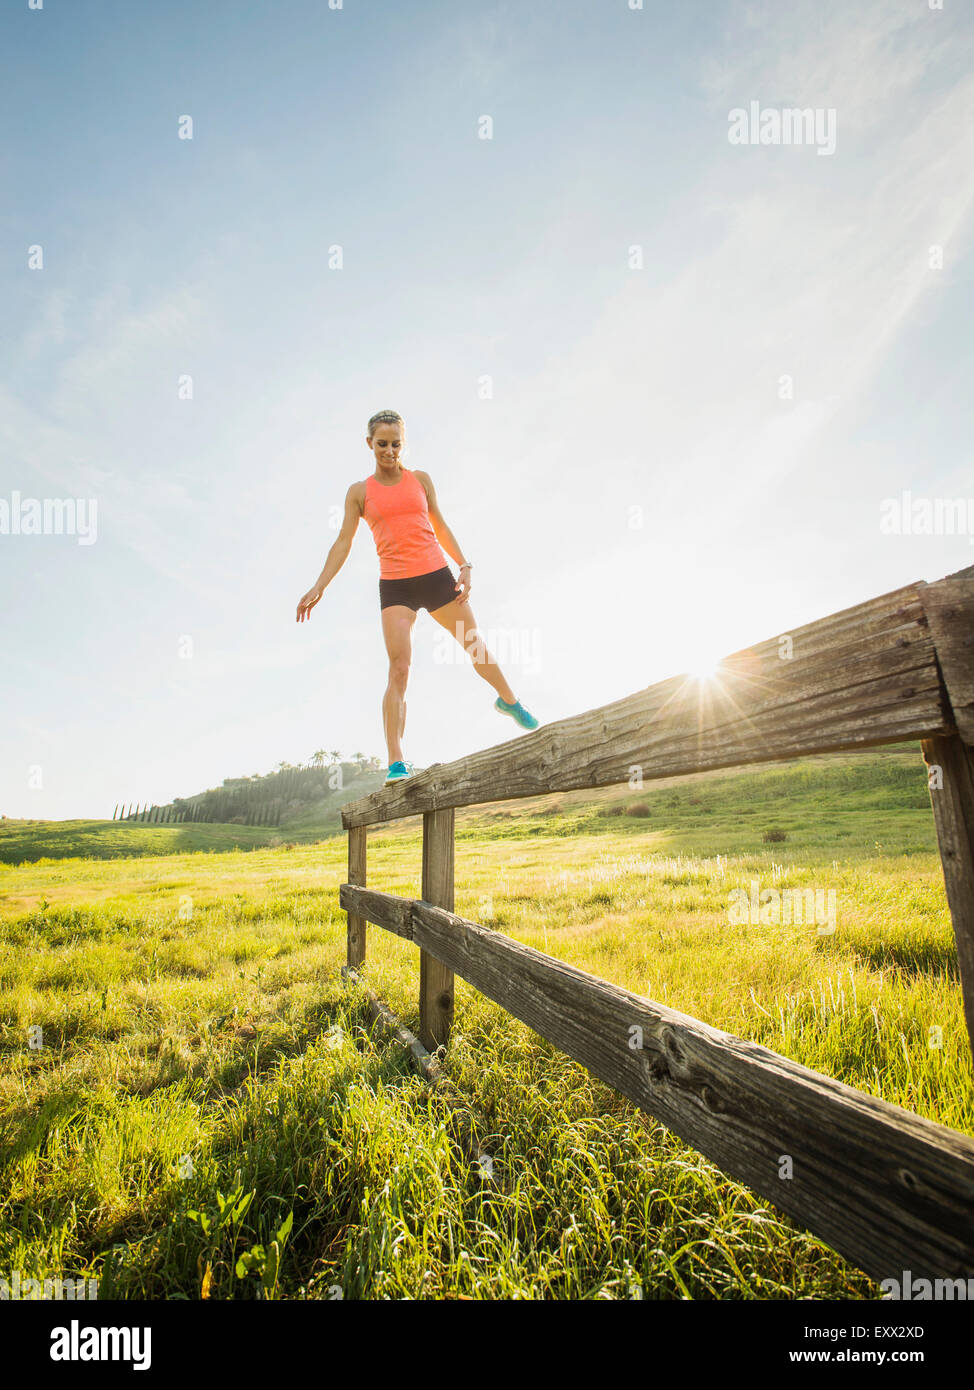 Woman balancing on wooden fence Photo Stock